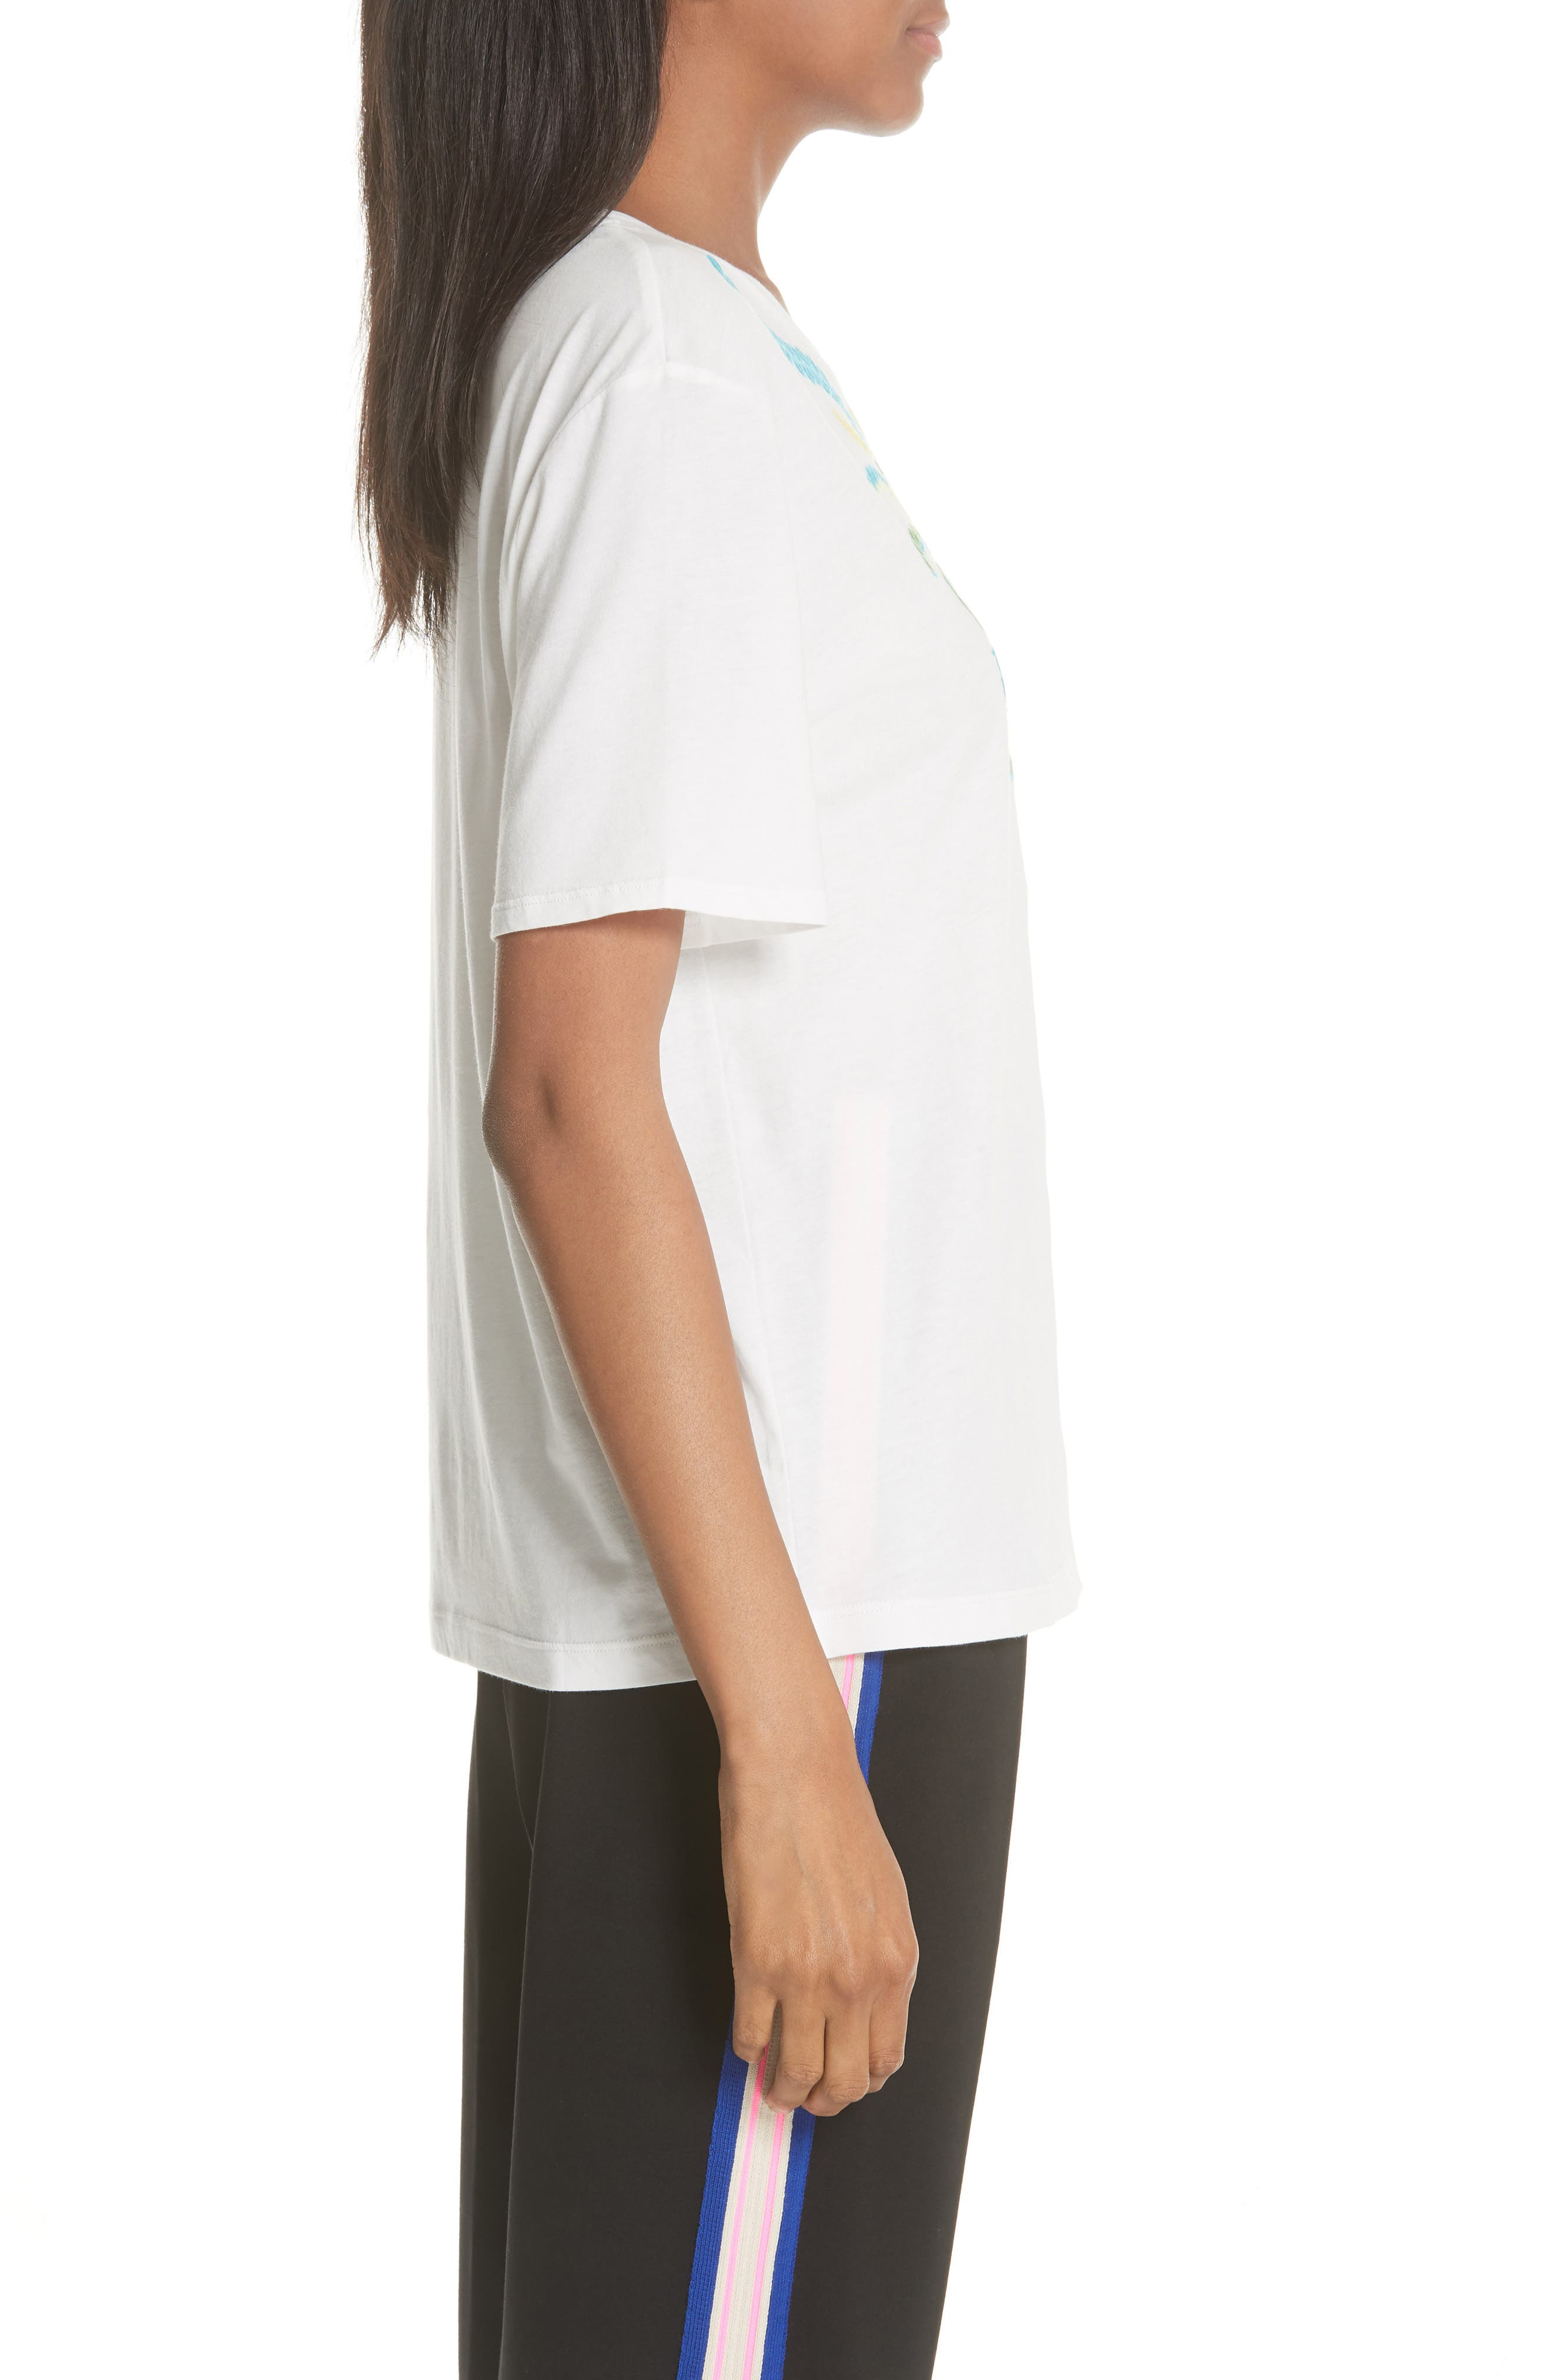 SANDRO,                             Embroidery Cotton Blend Tee,                             Alternate thumbnail 3, color,                             100